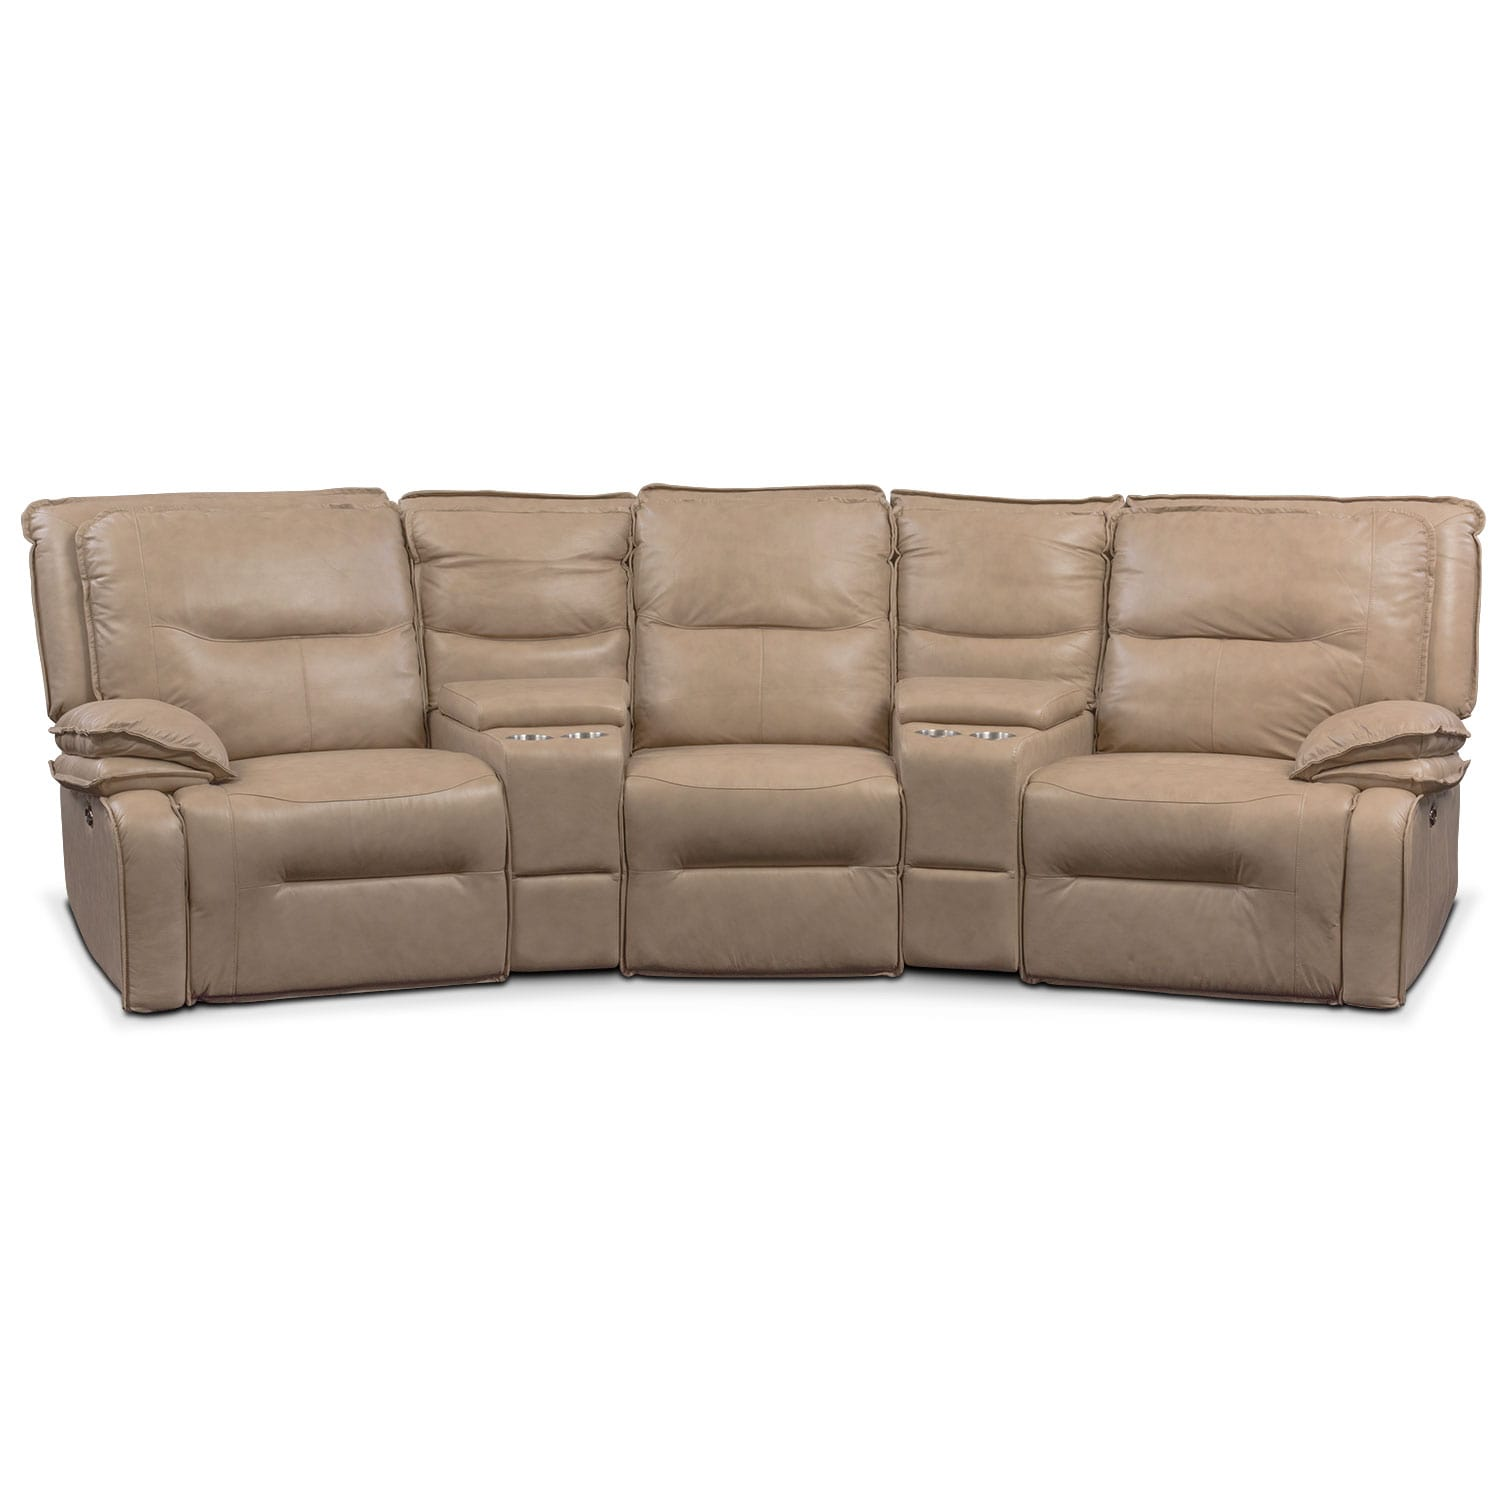 Living Room Furniture - Nikki 5-Piece Power Reclining Home Theater Sectional - Taupe